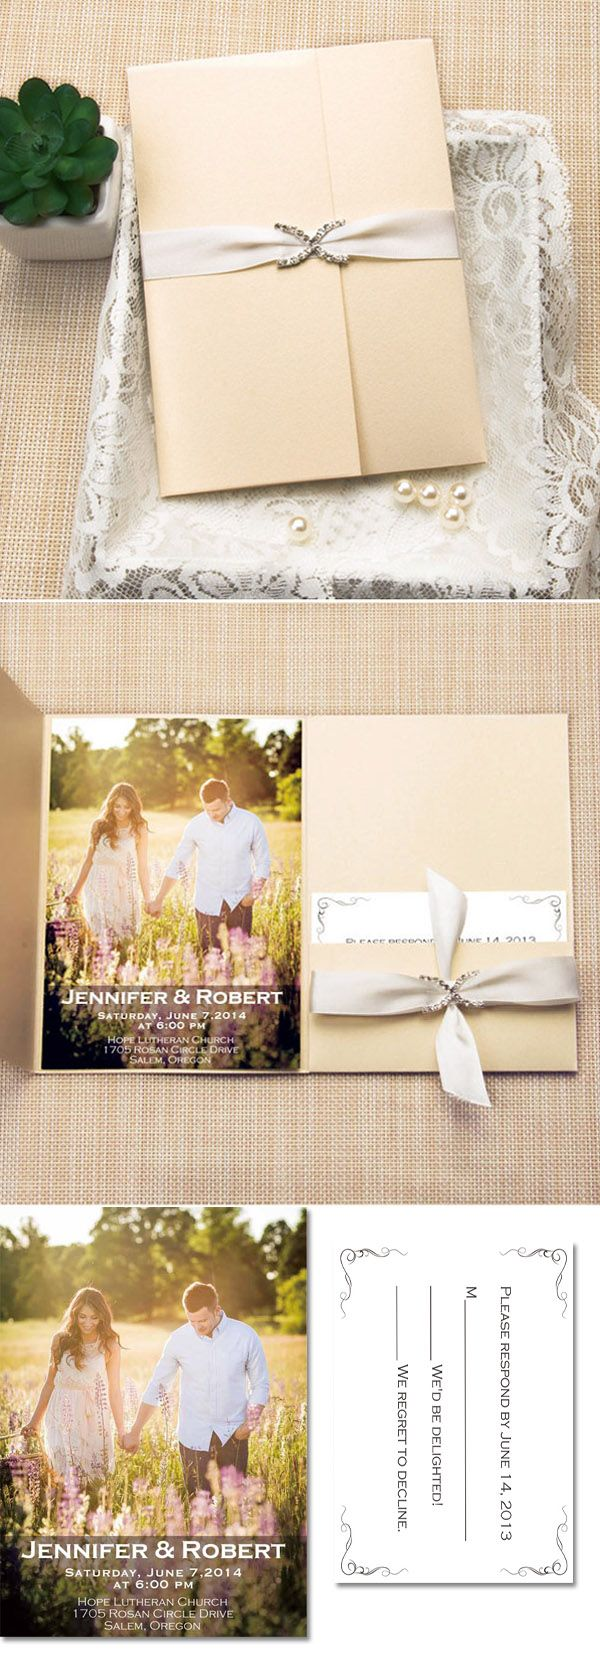 Romantic Pocket Photo Wedding Invitations with Rhinestone Buckle and Ribbon